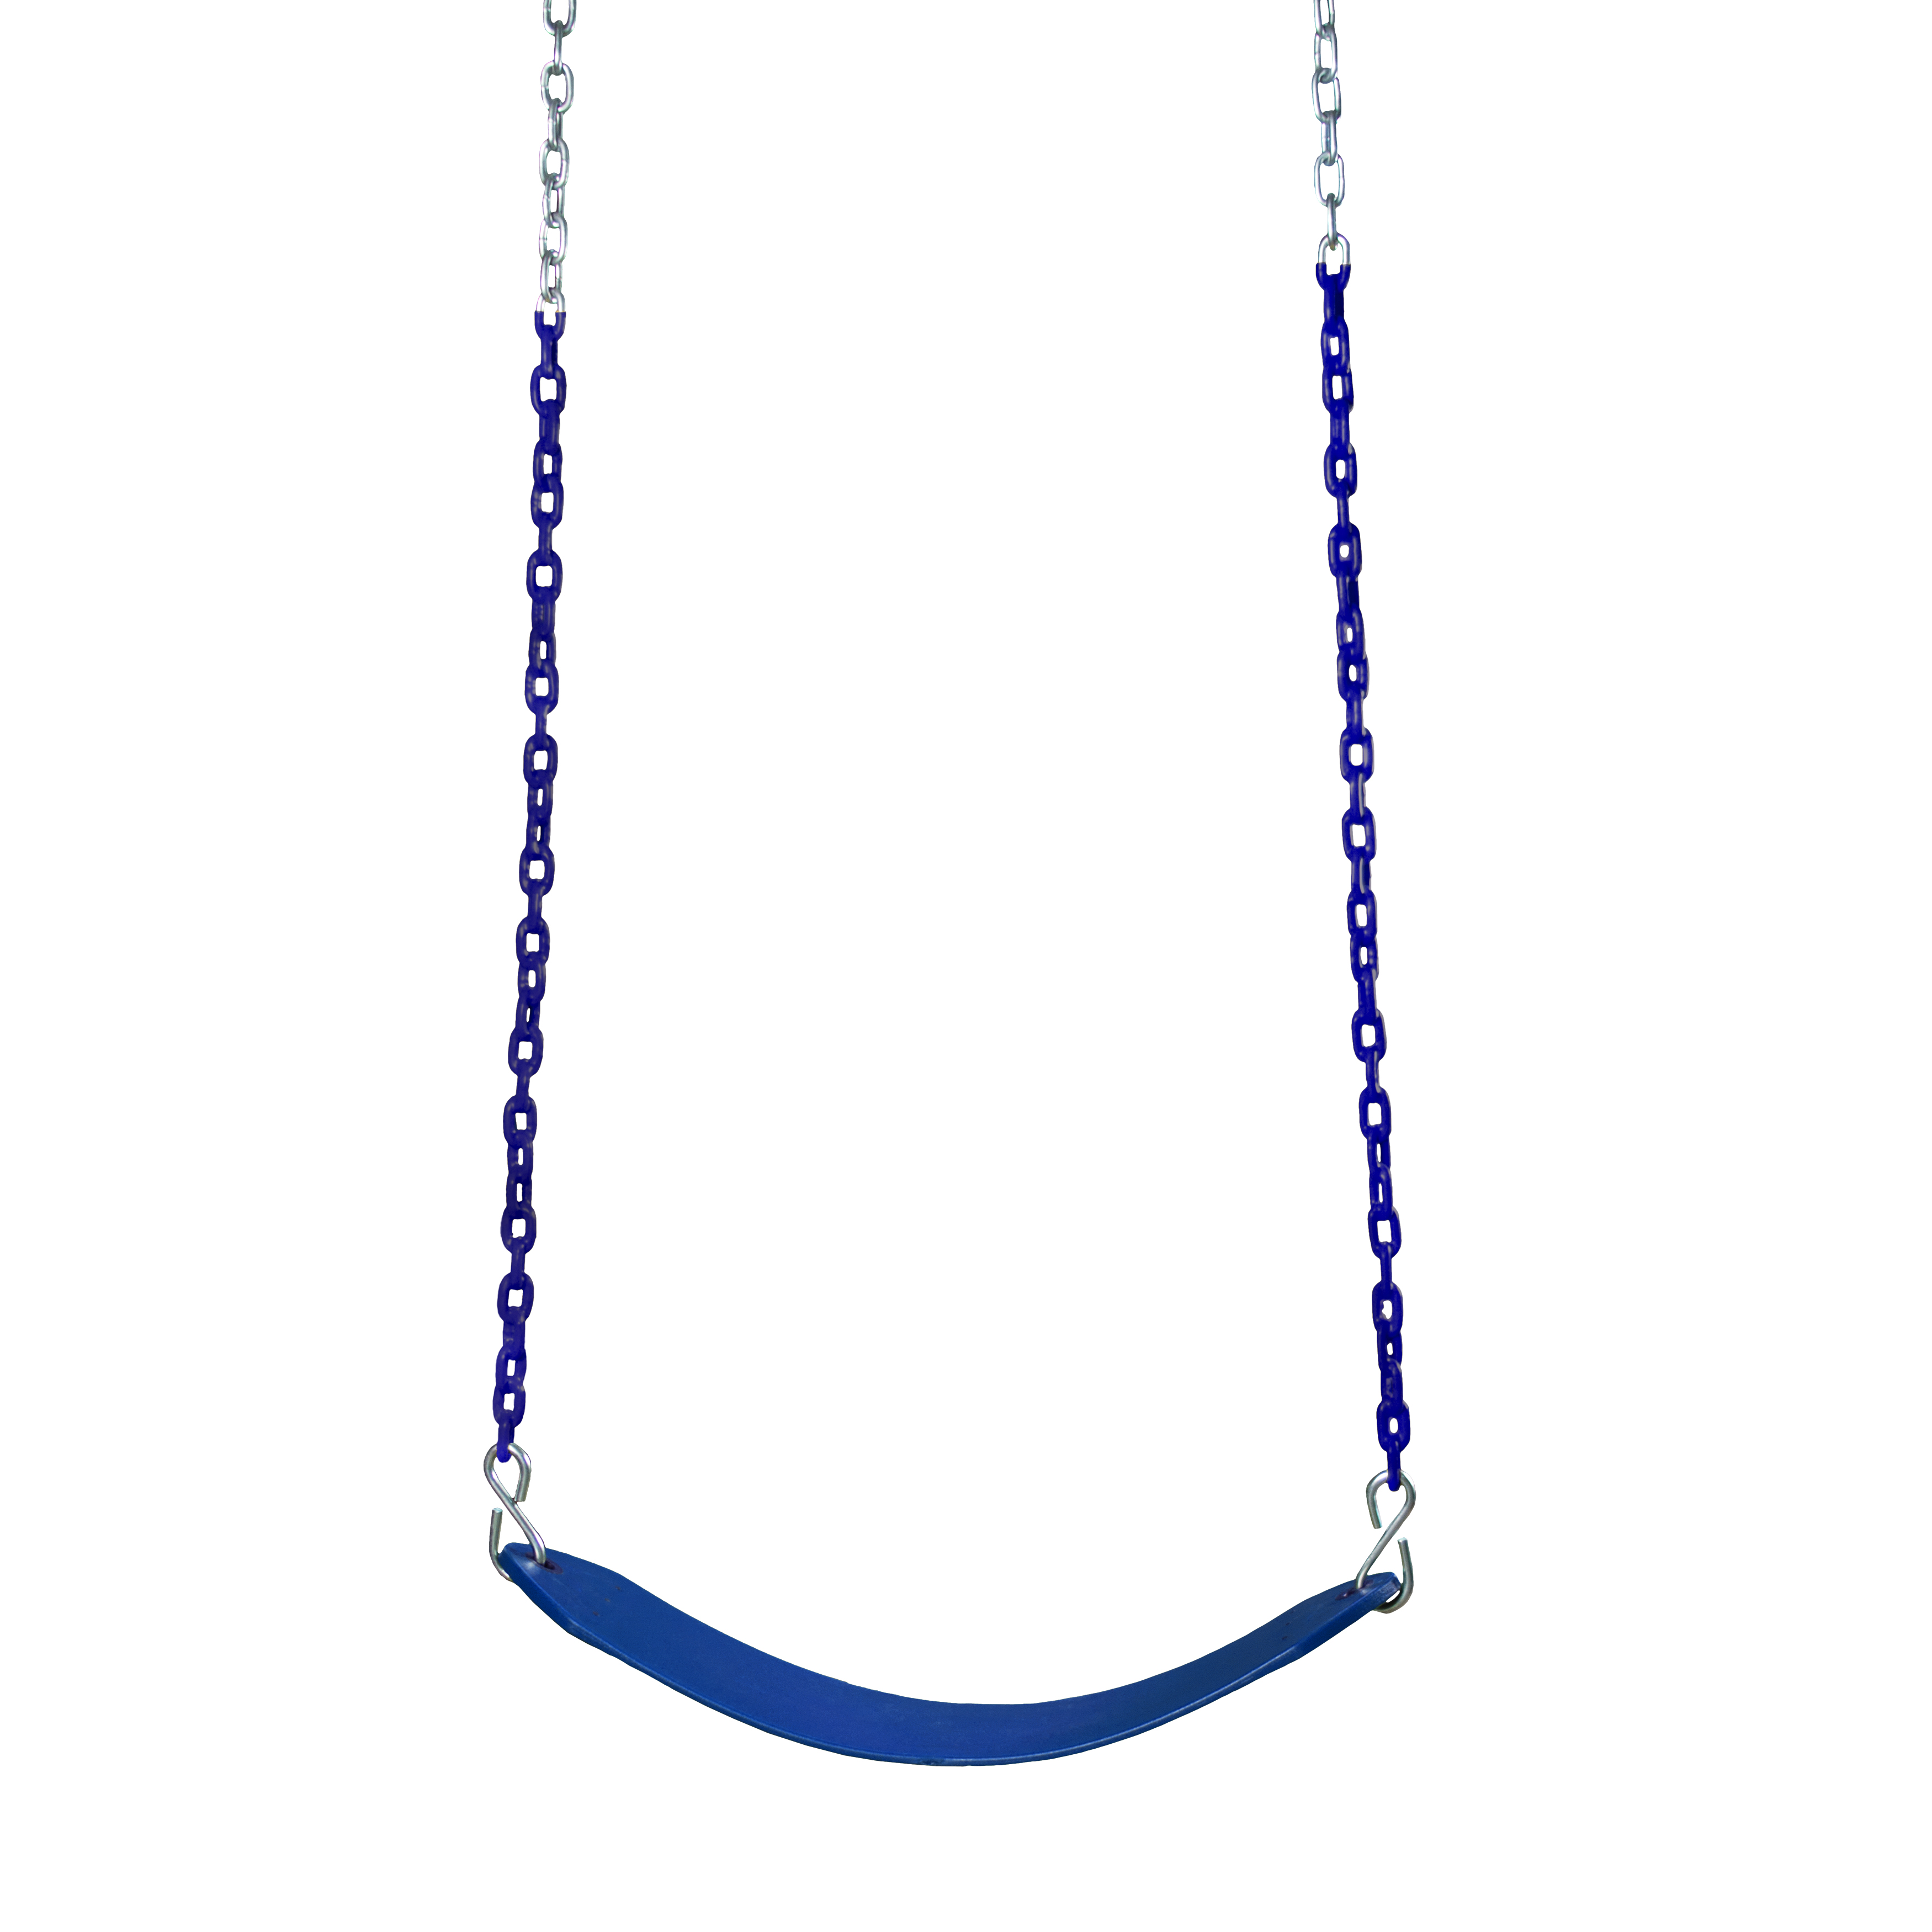 Gorilla Playsets Deluxe Blue Swing Belt with Blue Chains